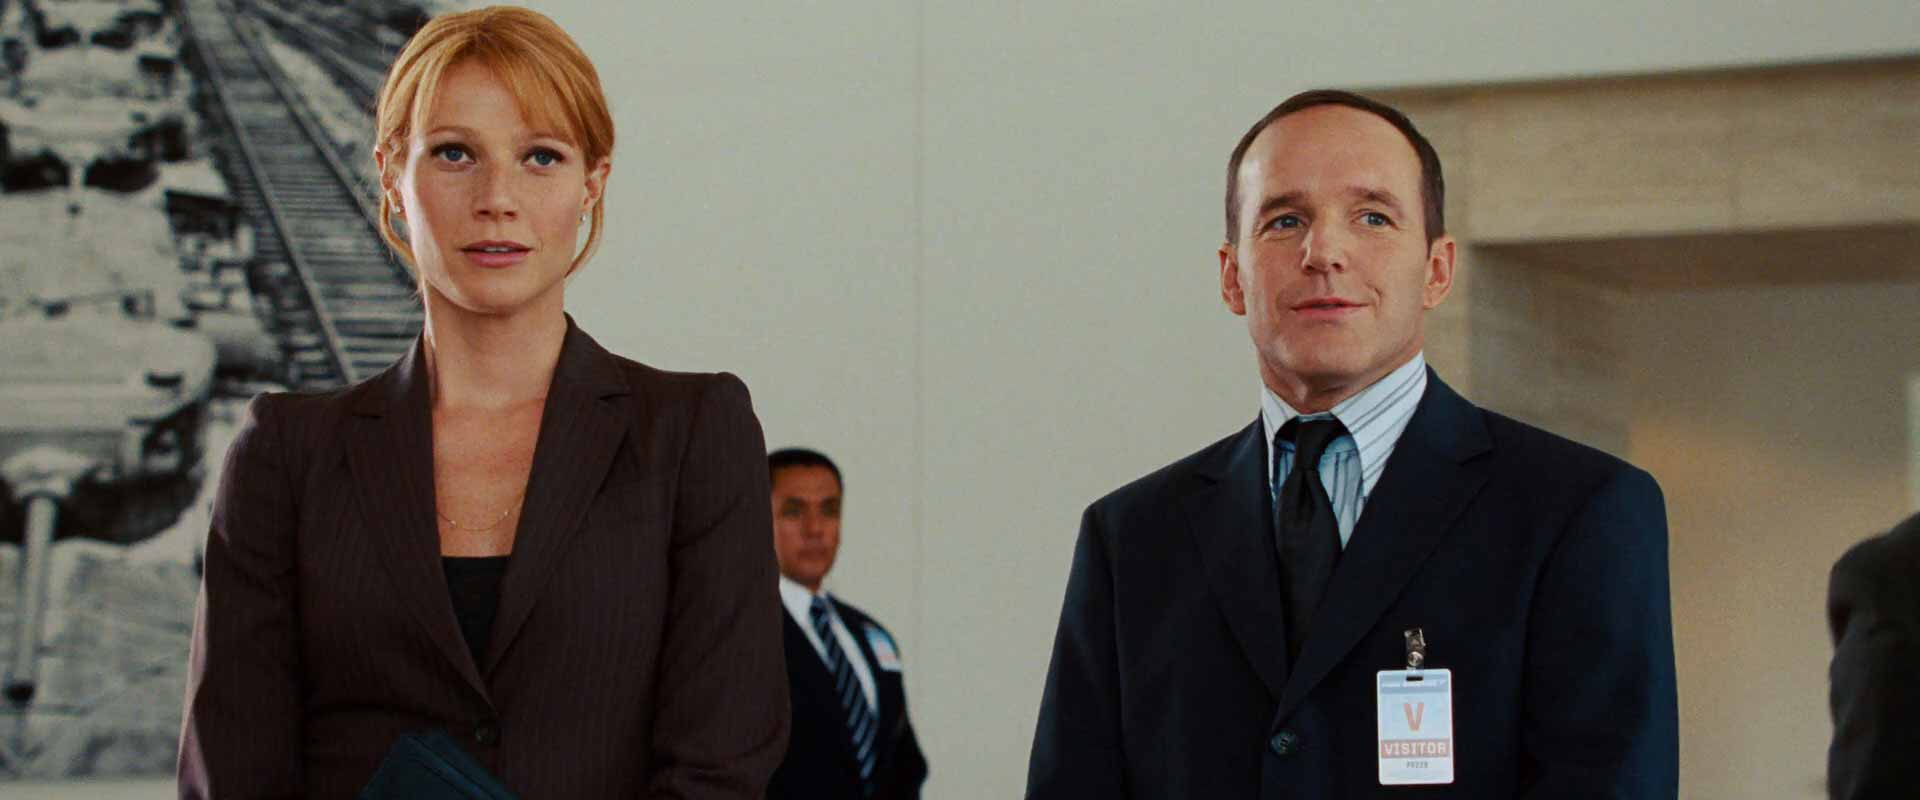 The Road To Avengers Endgame Iron Man - Pepper Potts Clark Gregg